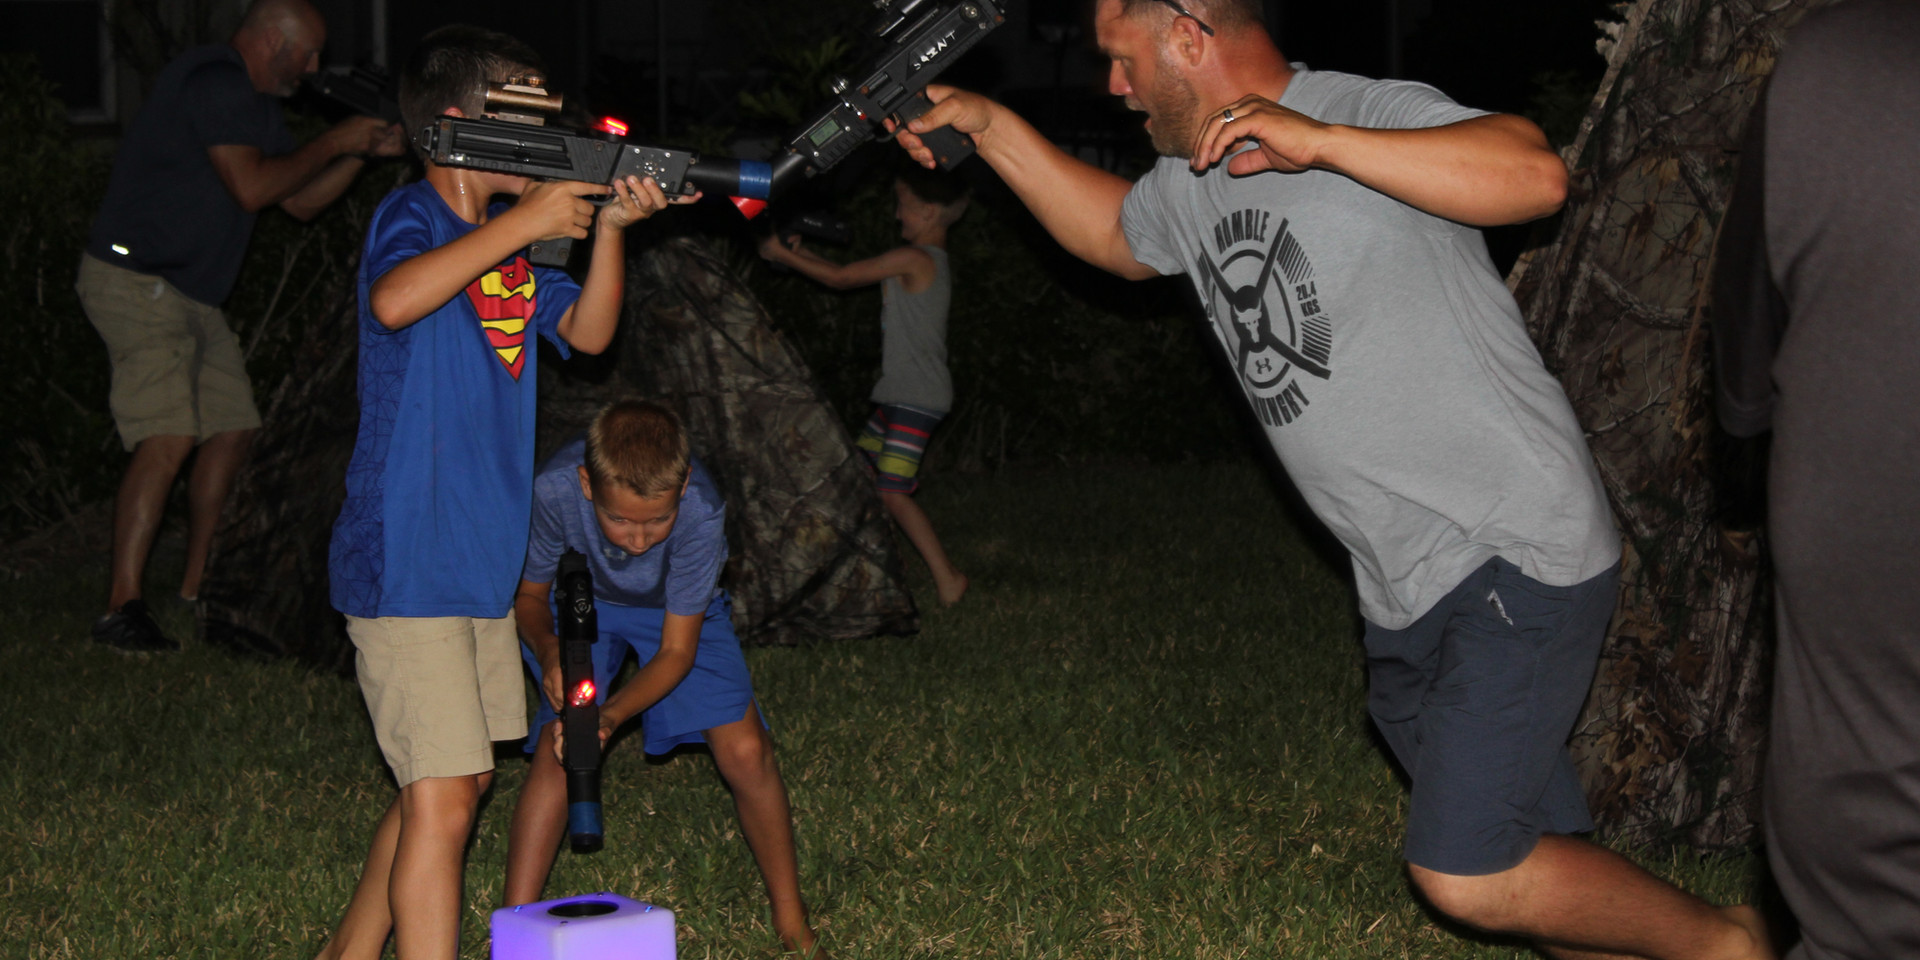 Fortnite party ideas in Lakewood Ranch